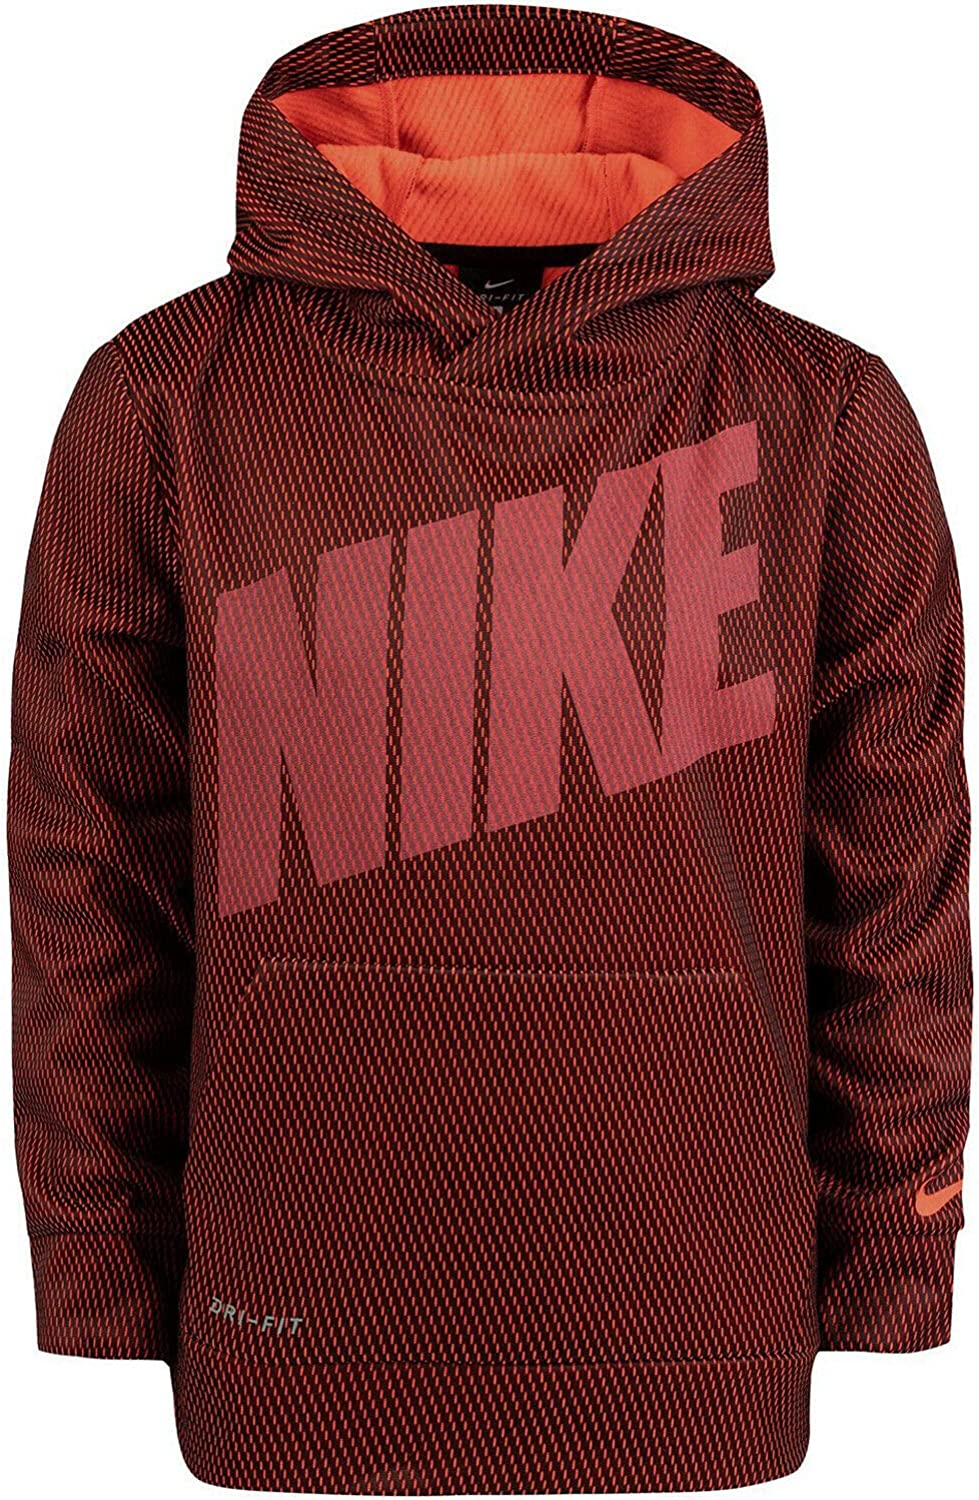 2T Black//Red Nike Boys Therma-Fit Pullover Hoodie